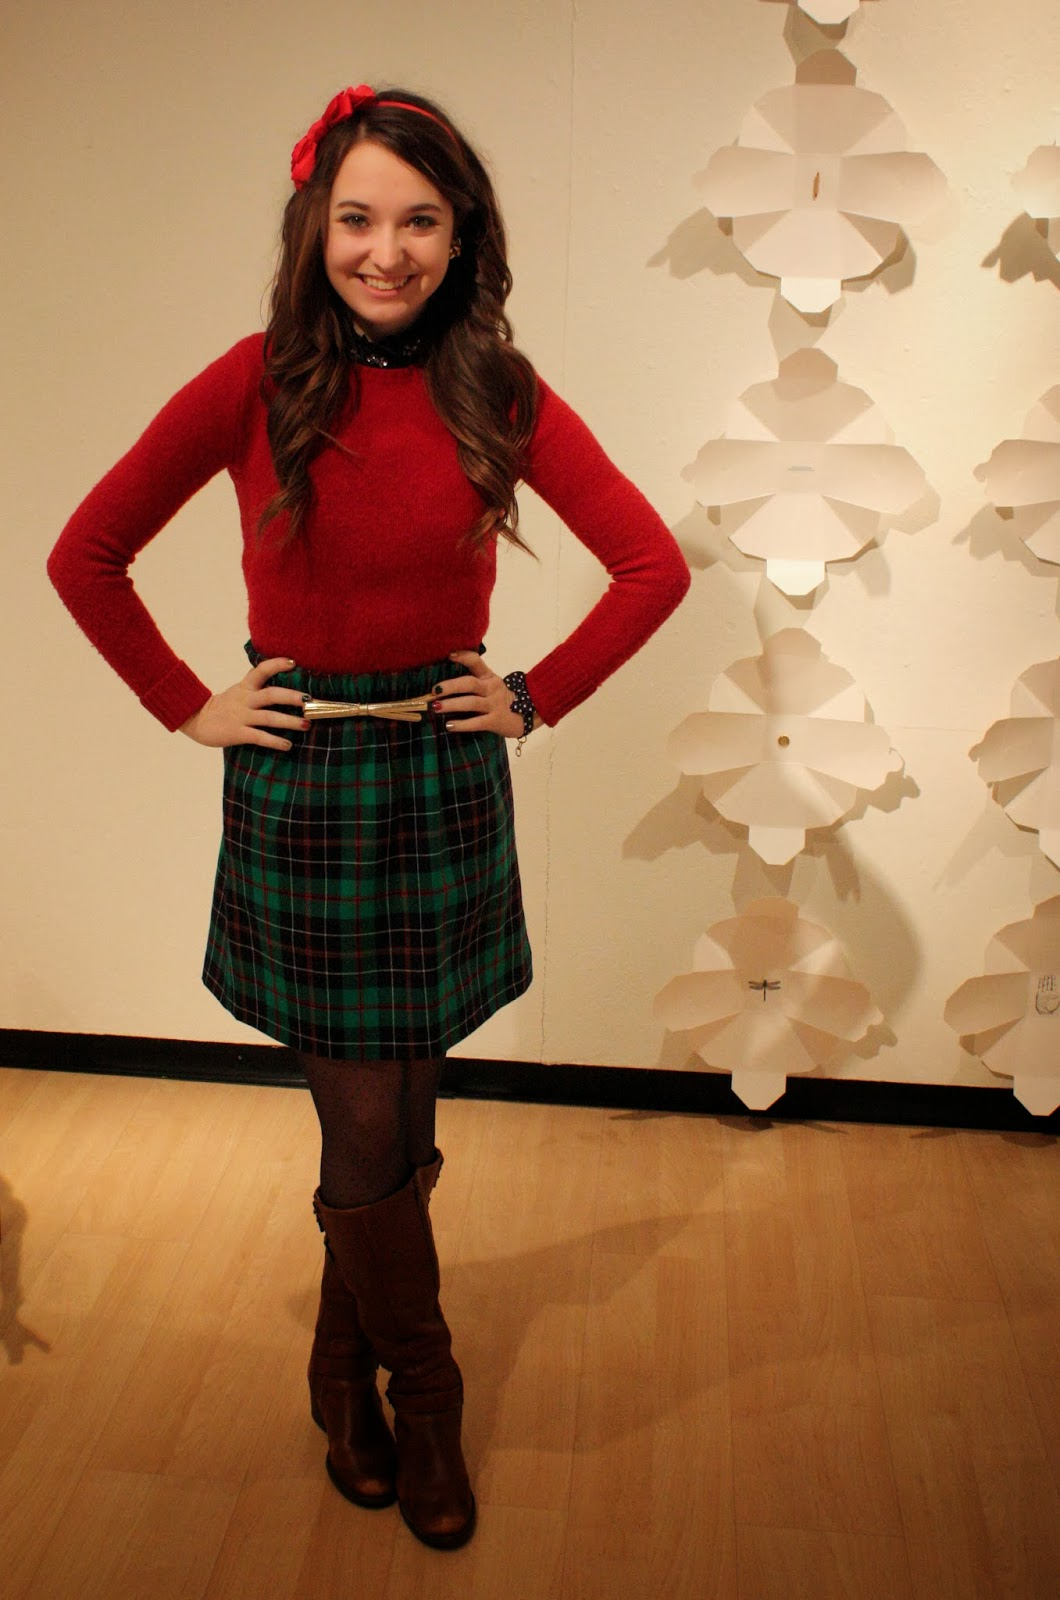 2a4614f3733d Sweater: Rugby Ralph Lauren (old), shirt: J. Crew (got it on sale in store  for $28!), skirt: J. Crew, belt: Lilly Pulitzer, tights: J. Crew, headband:  J. ...